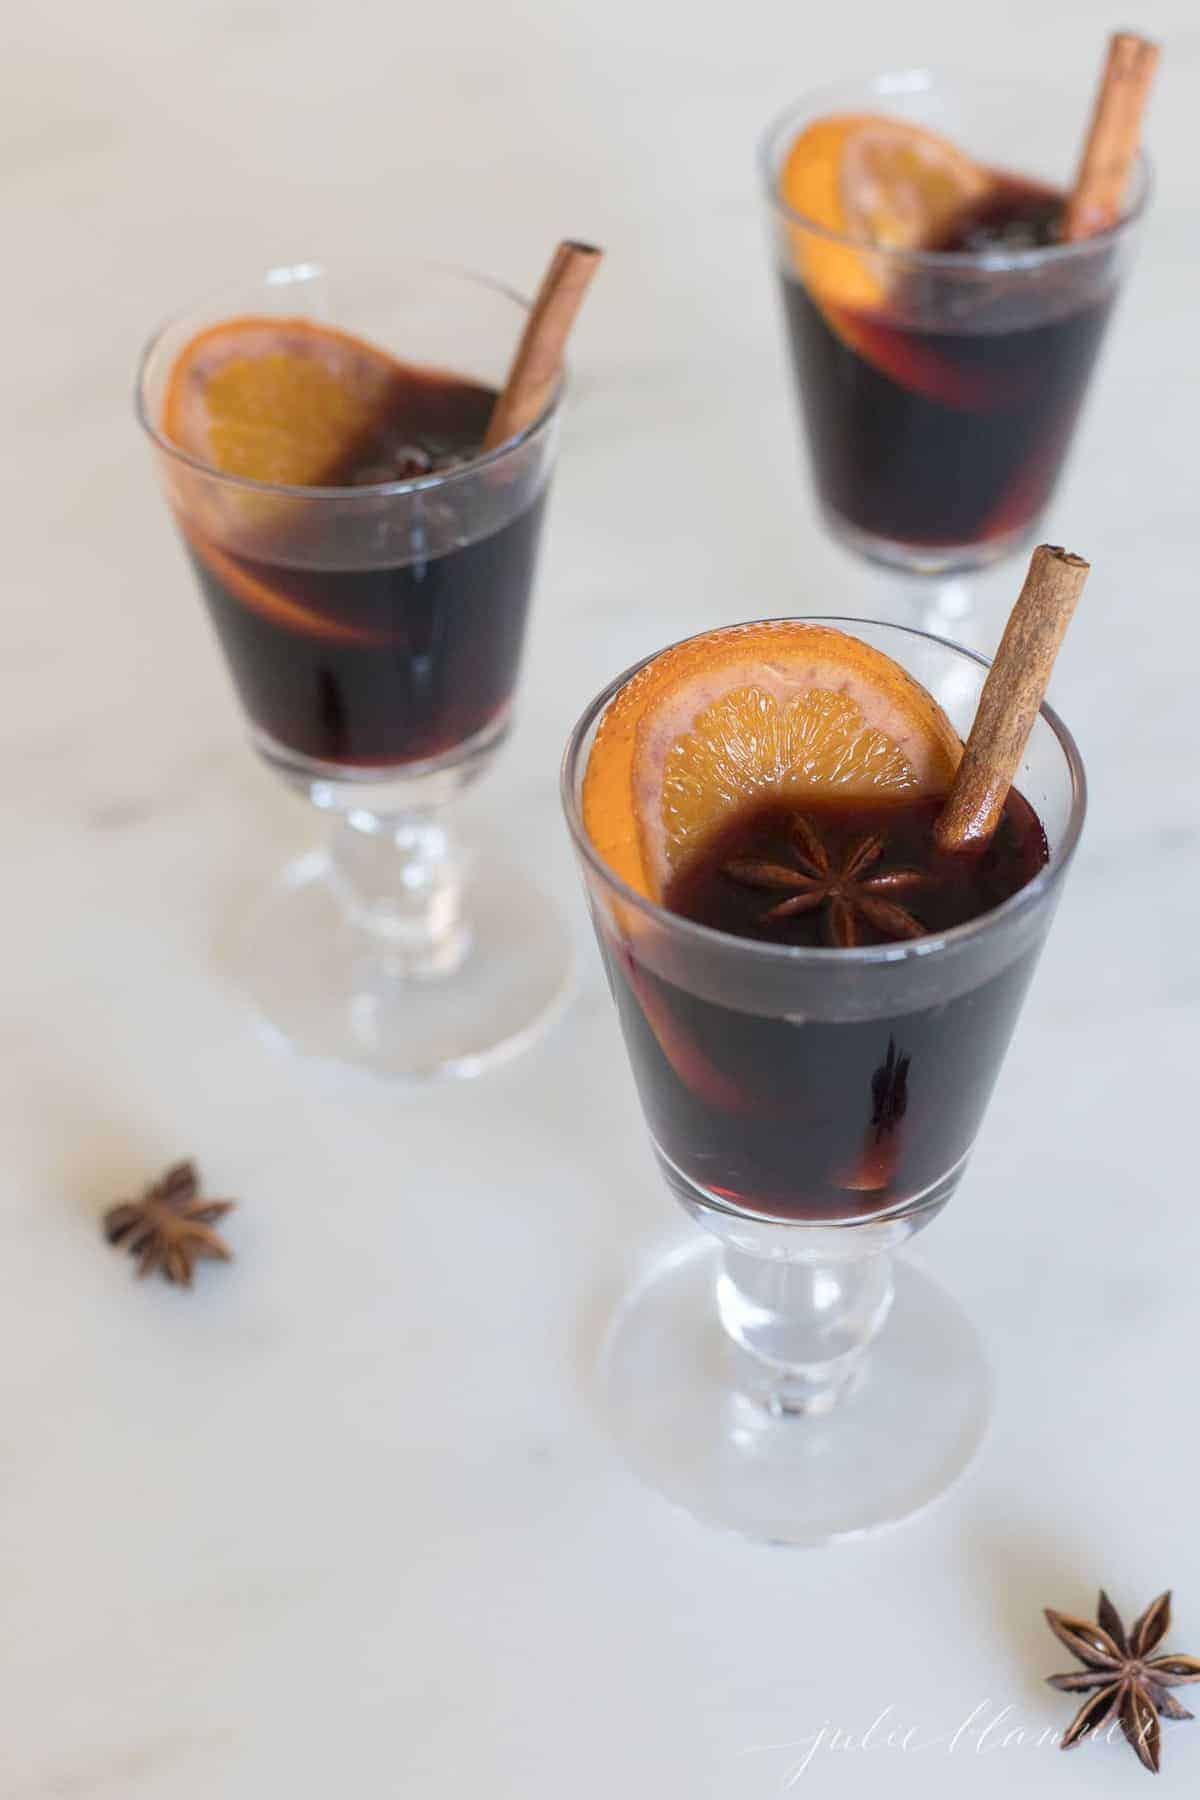 clear glasses full of mulled wine, cinnamon stick and orange slice to the side.